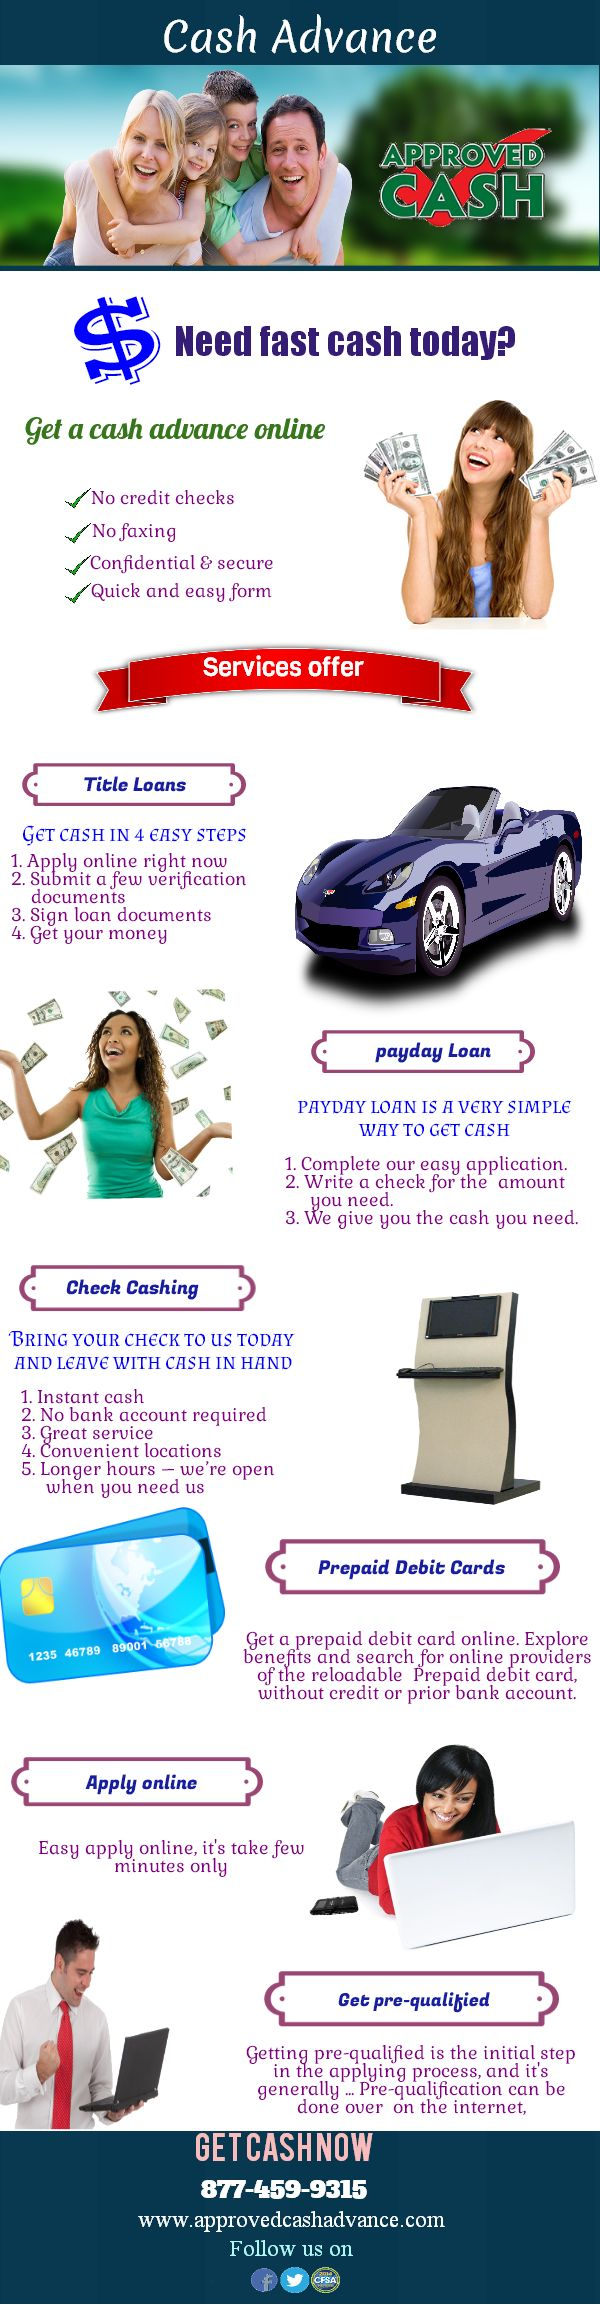 Cash advance scb picture 5